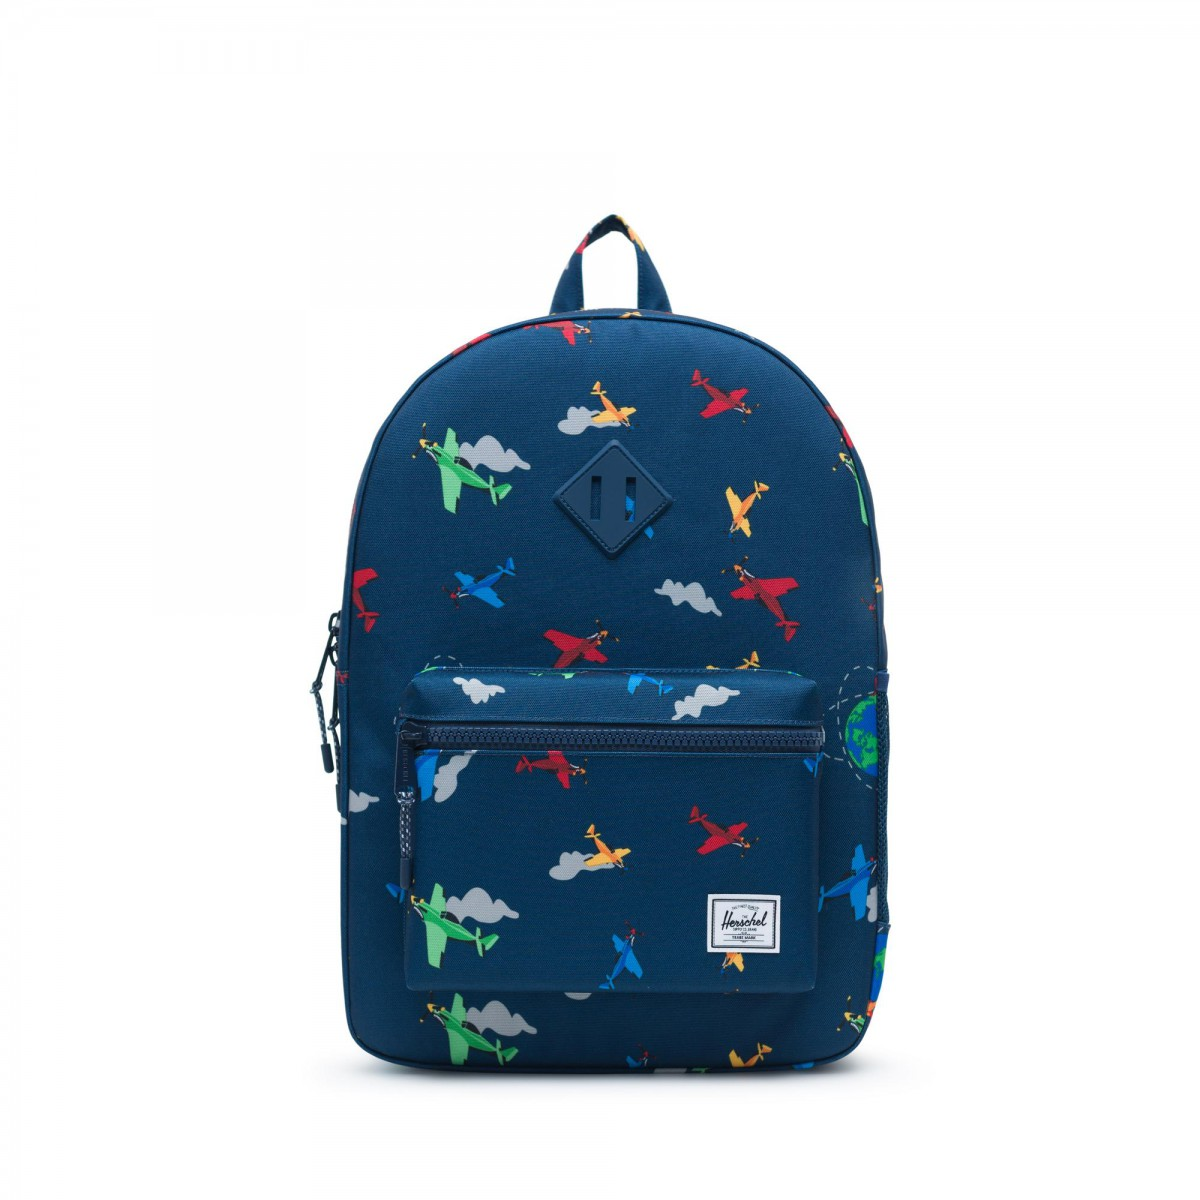 Herschel rugzak Sky Captain large